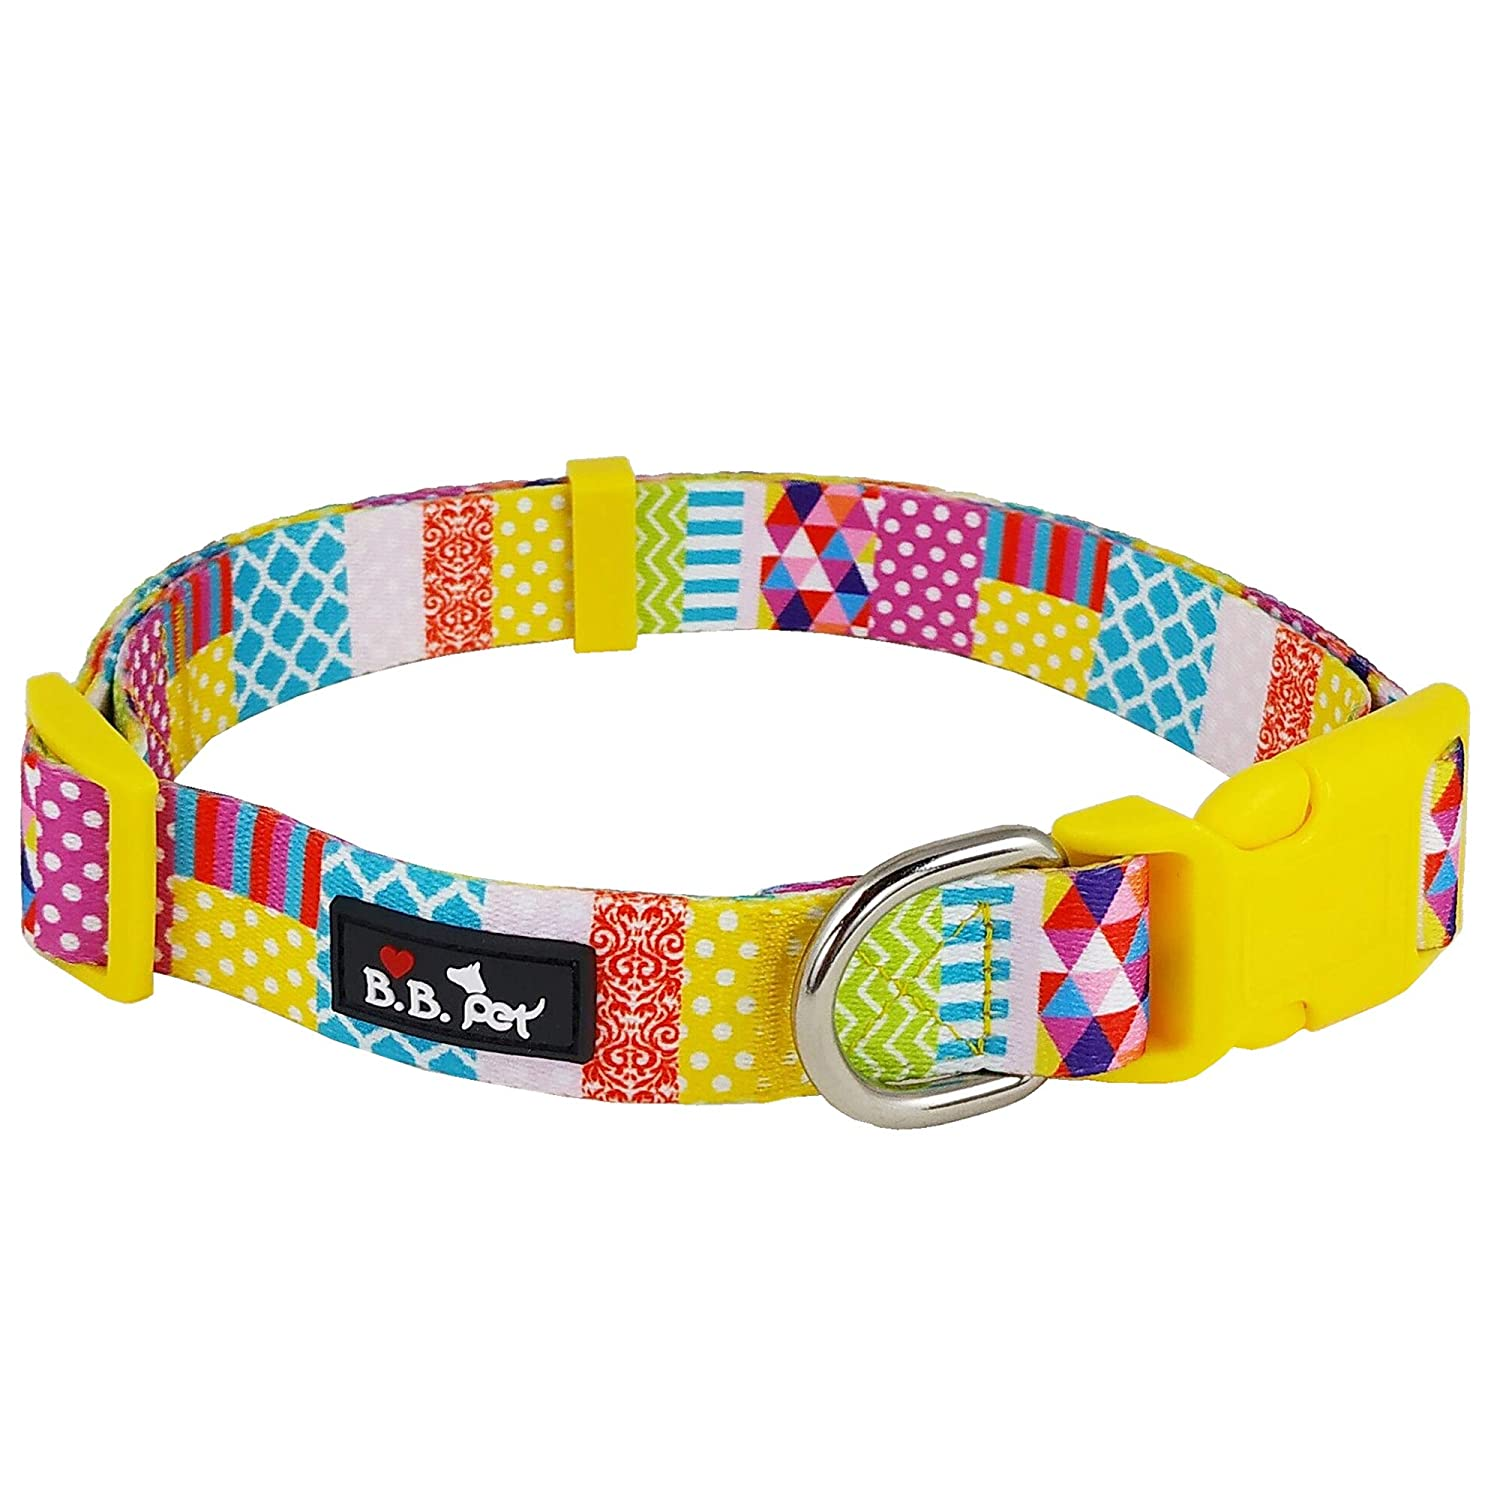 11\ Bestbuddy Pet colorful Patchwork Durable Nylon Designer Fashion Dog Collar Trendy Comfortable Adjustable Dog Collar with Buckle BBP007